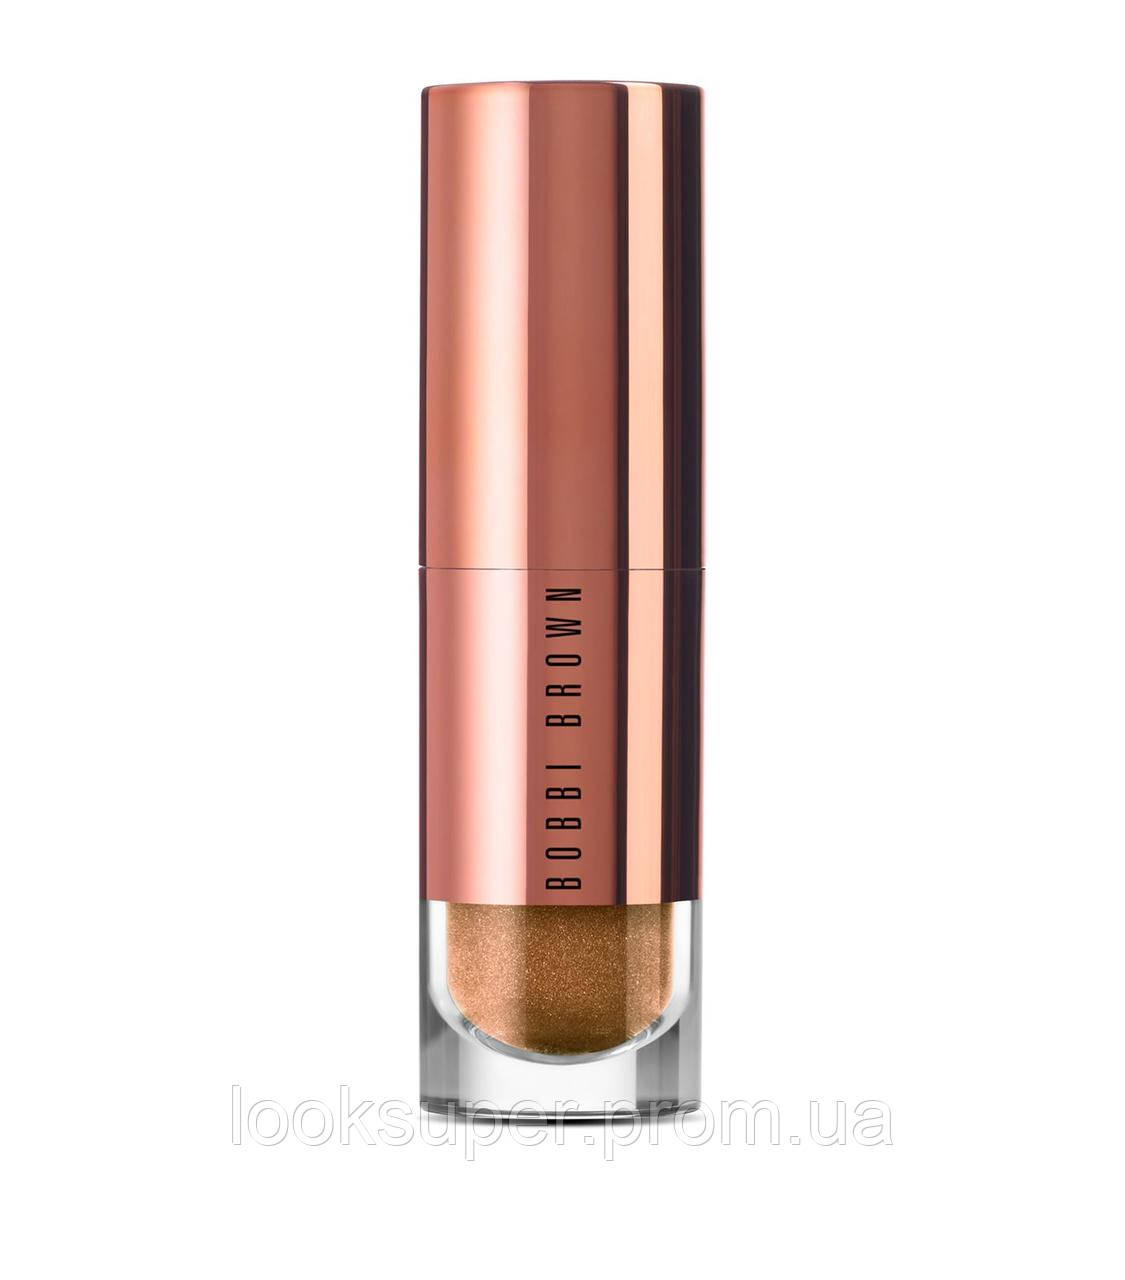 Жидкие тени для век Боби Браун High Shine Liquid Eyeshadow GOLD FUSION